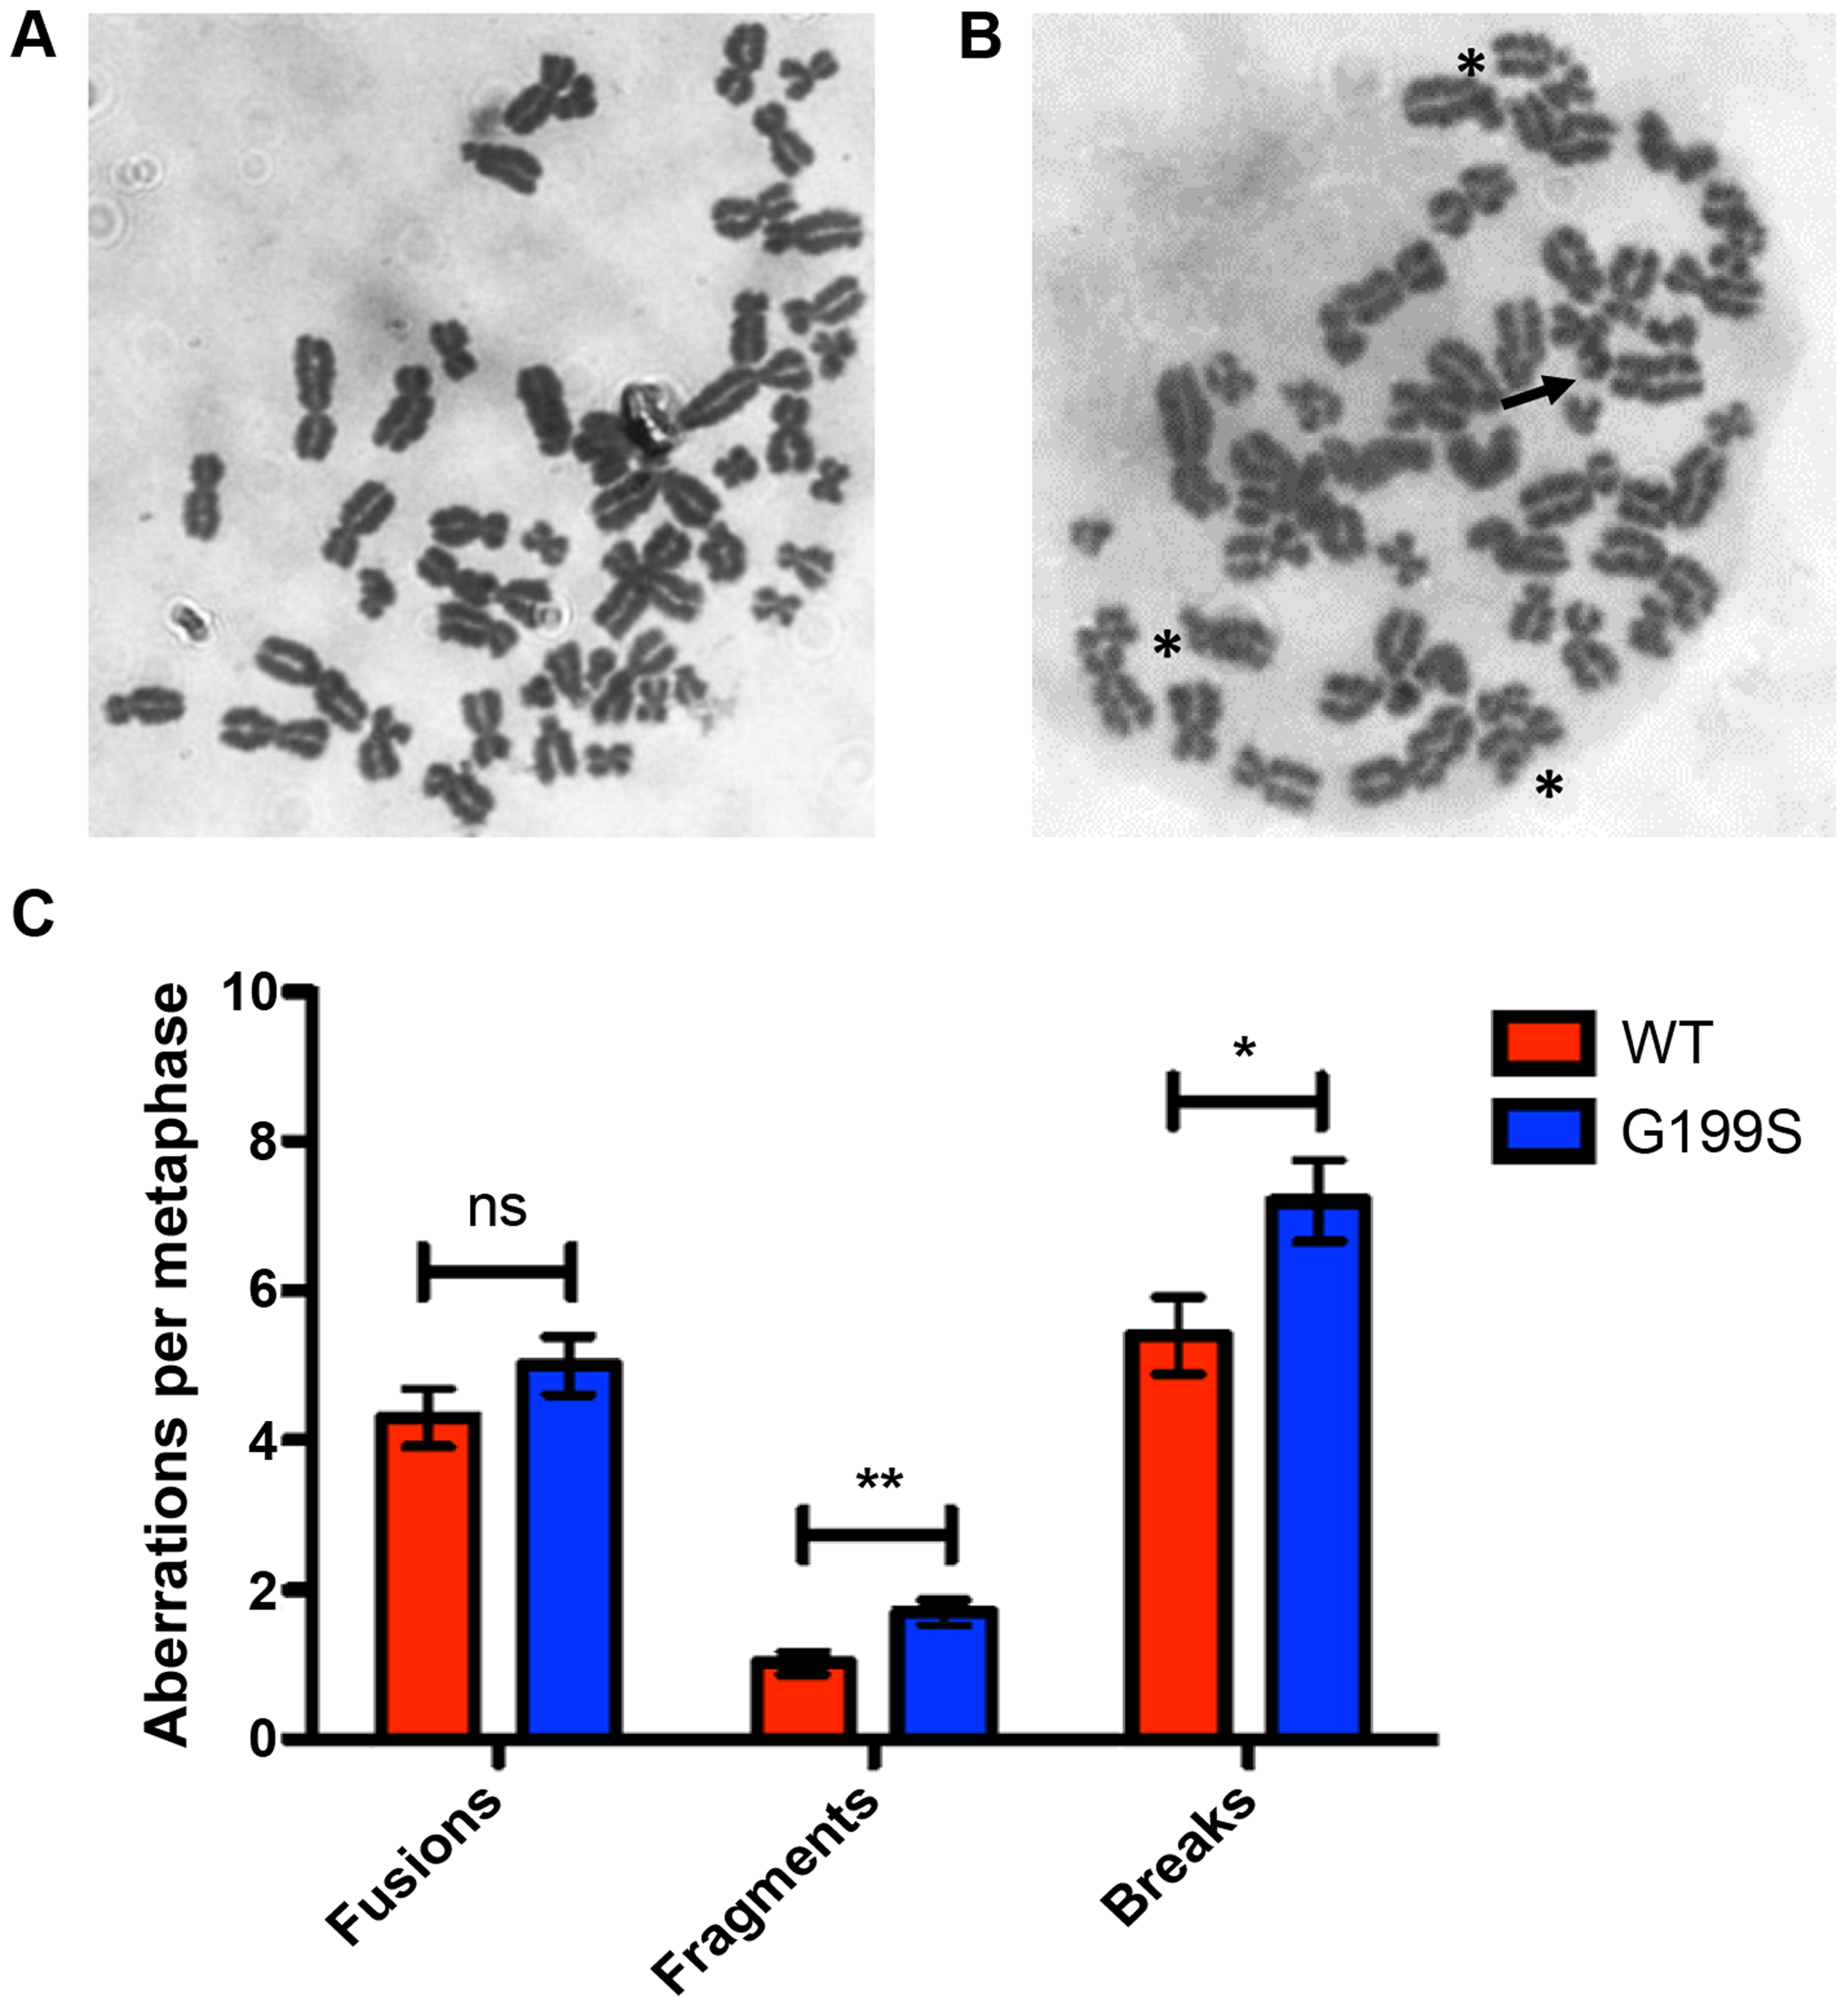 Expression of G199S leads to induction of chromosomal aberrations.